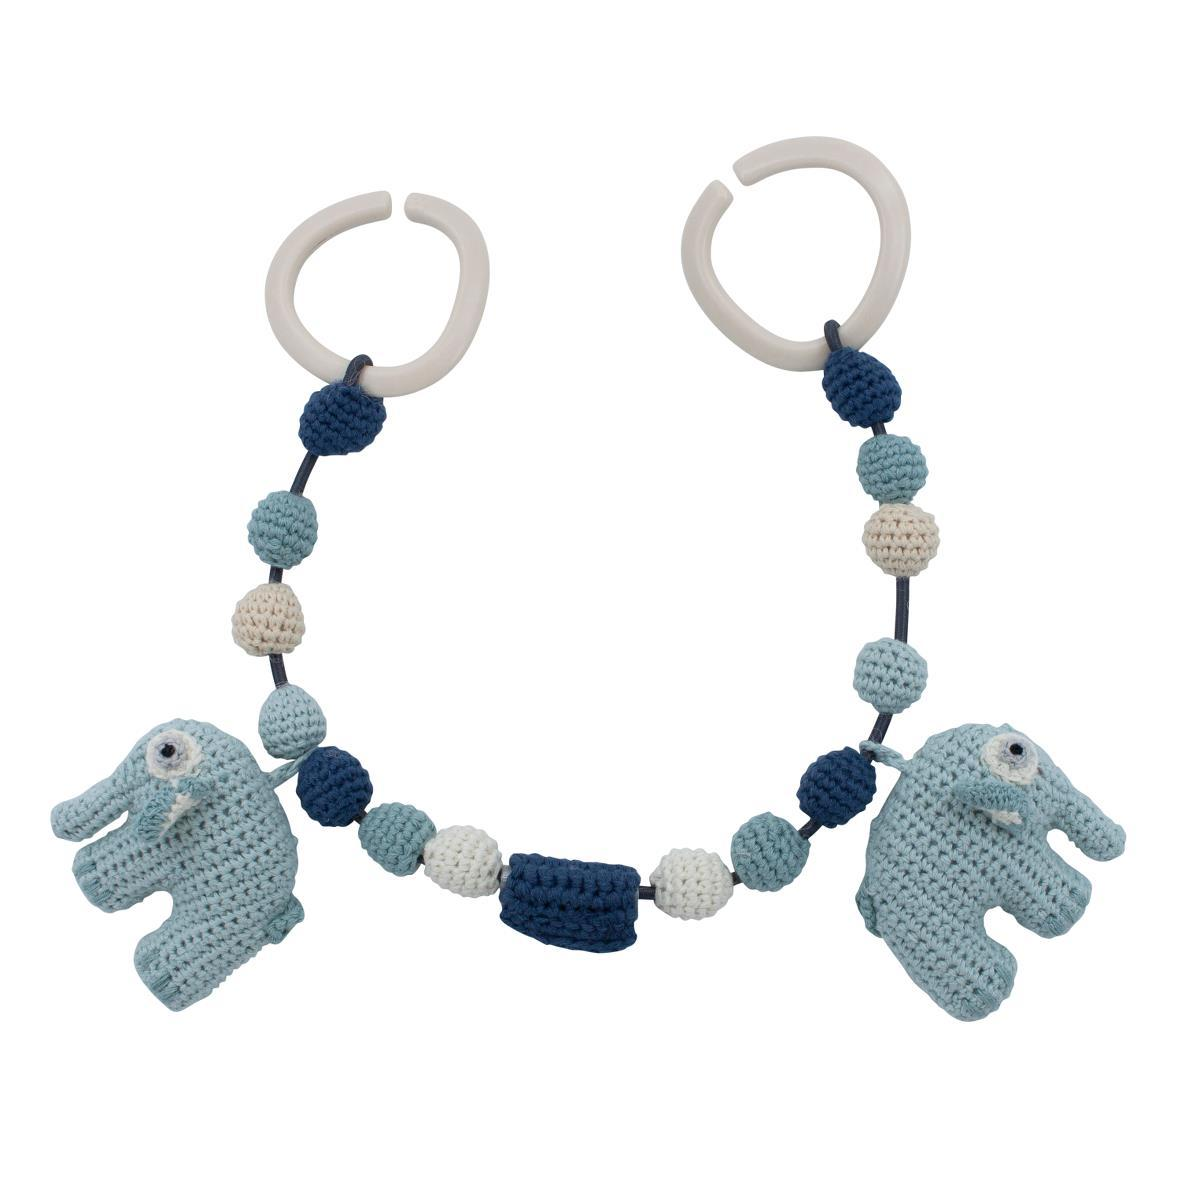 Sebra Crochet Pram Chain - Fanto The Elephant